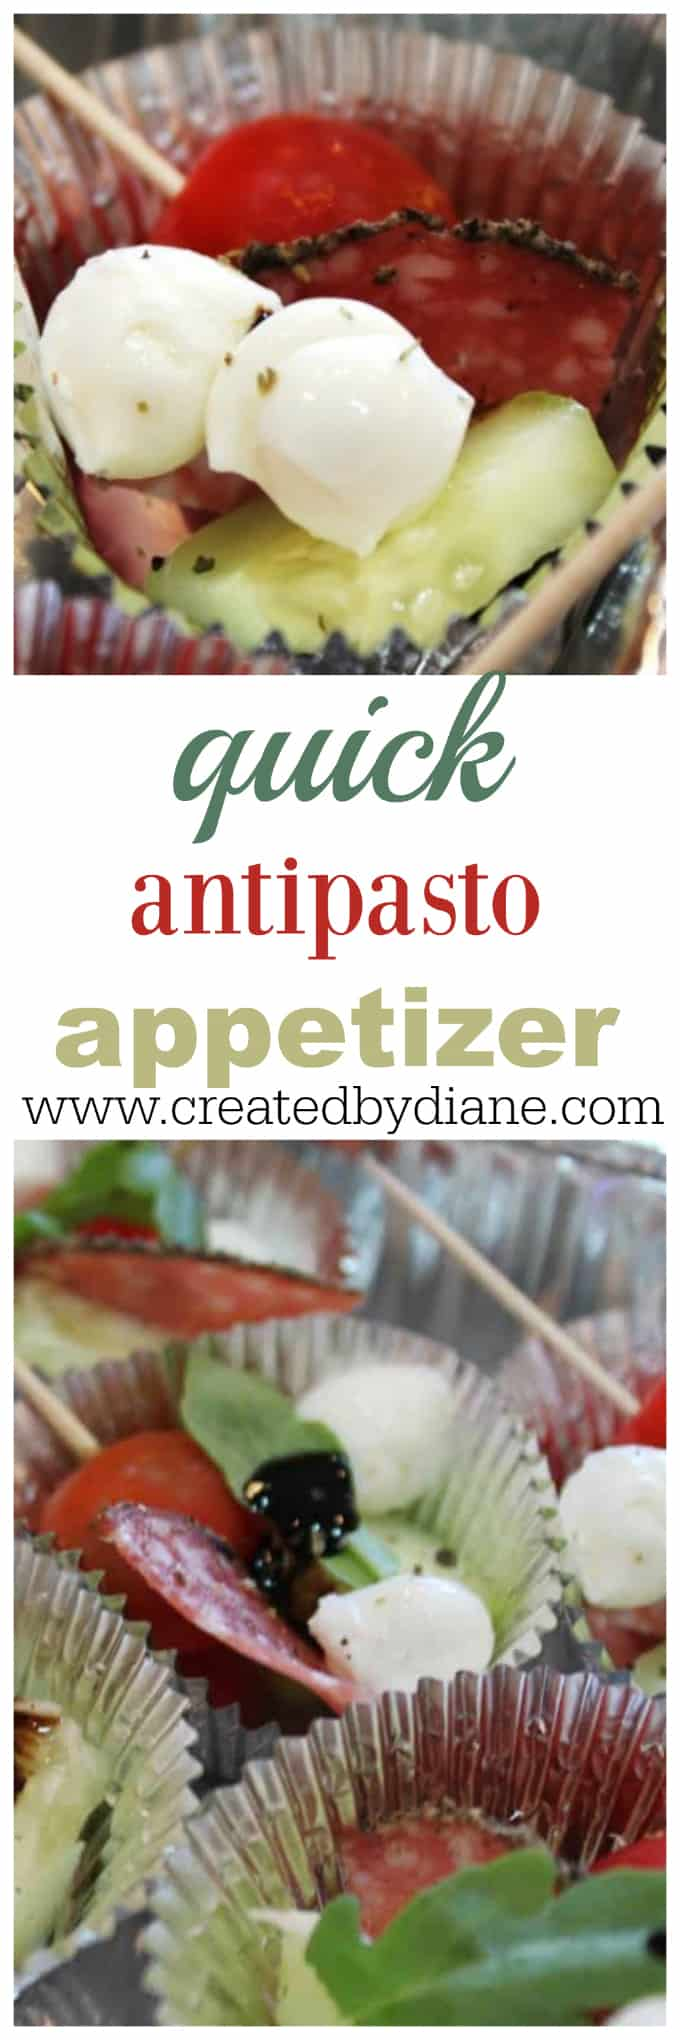 quick antipasto appetizer www.createdbydiane.com party food,